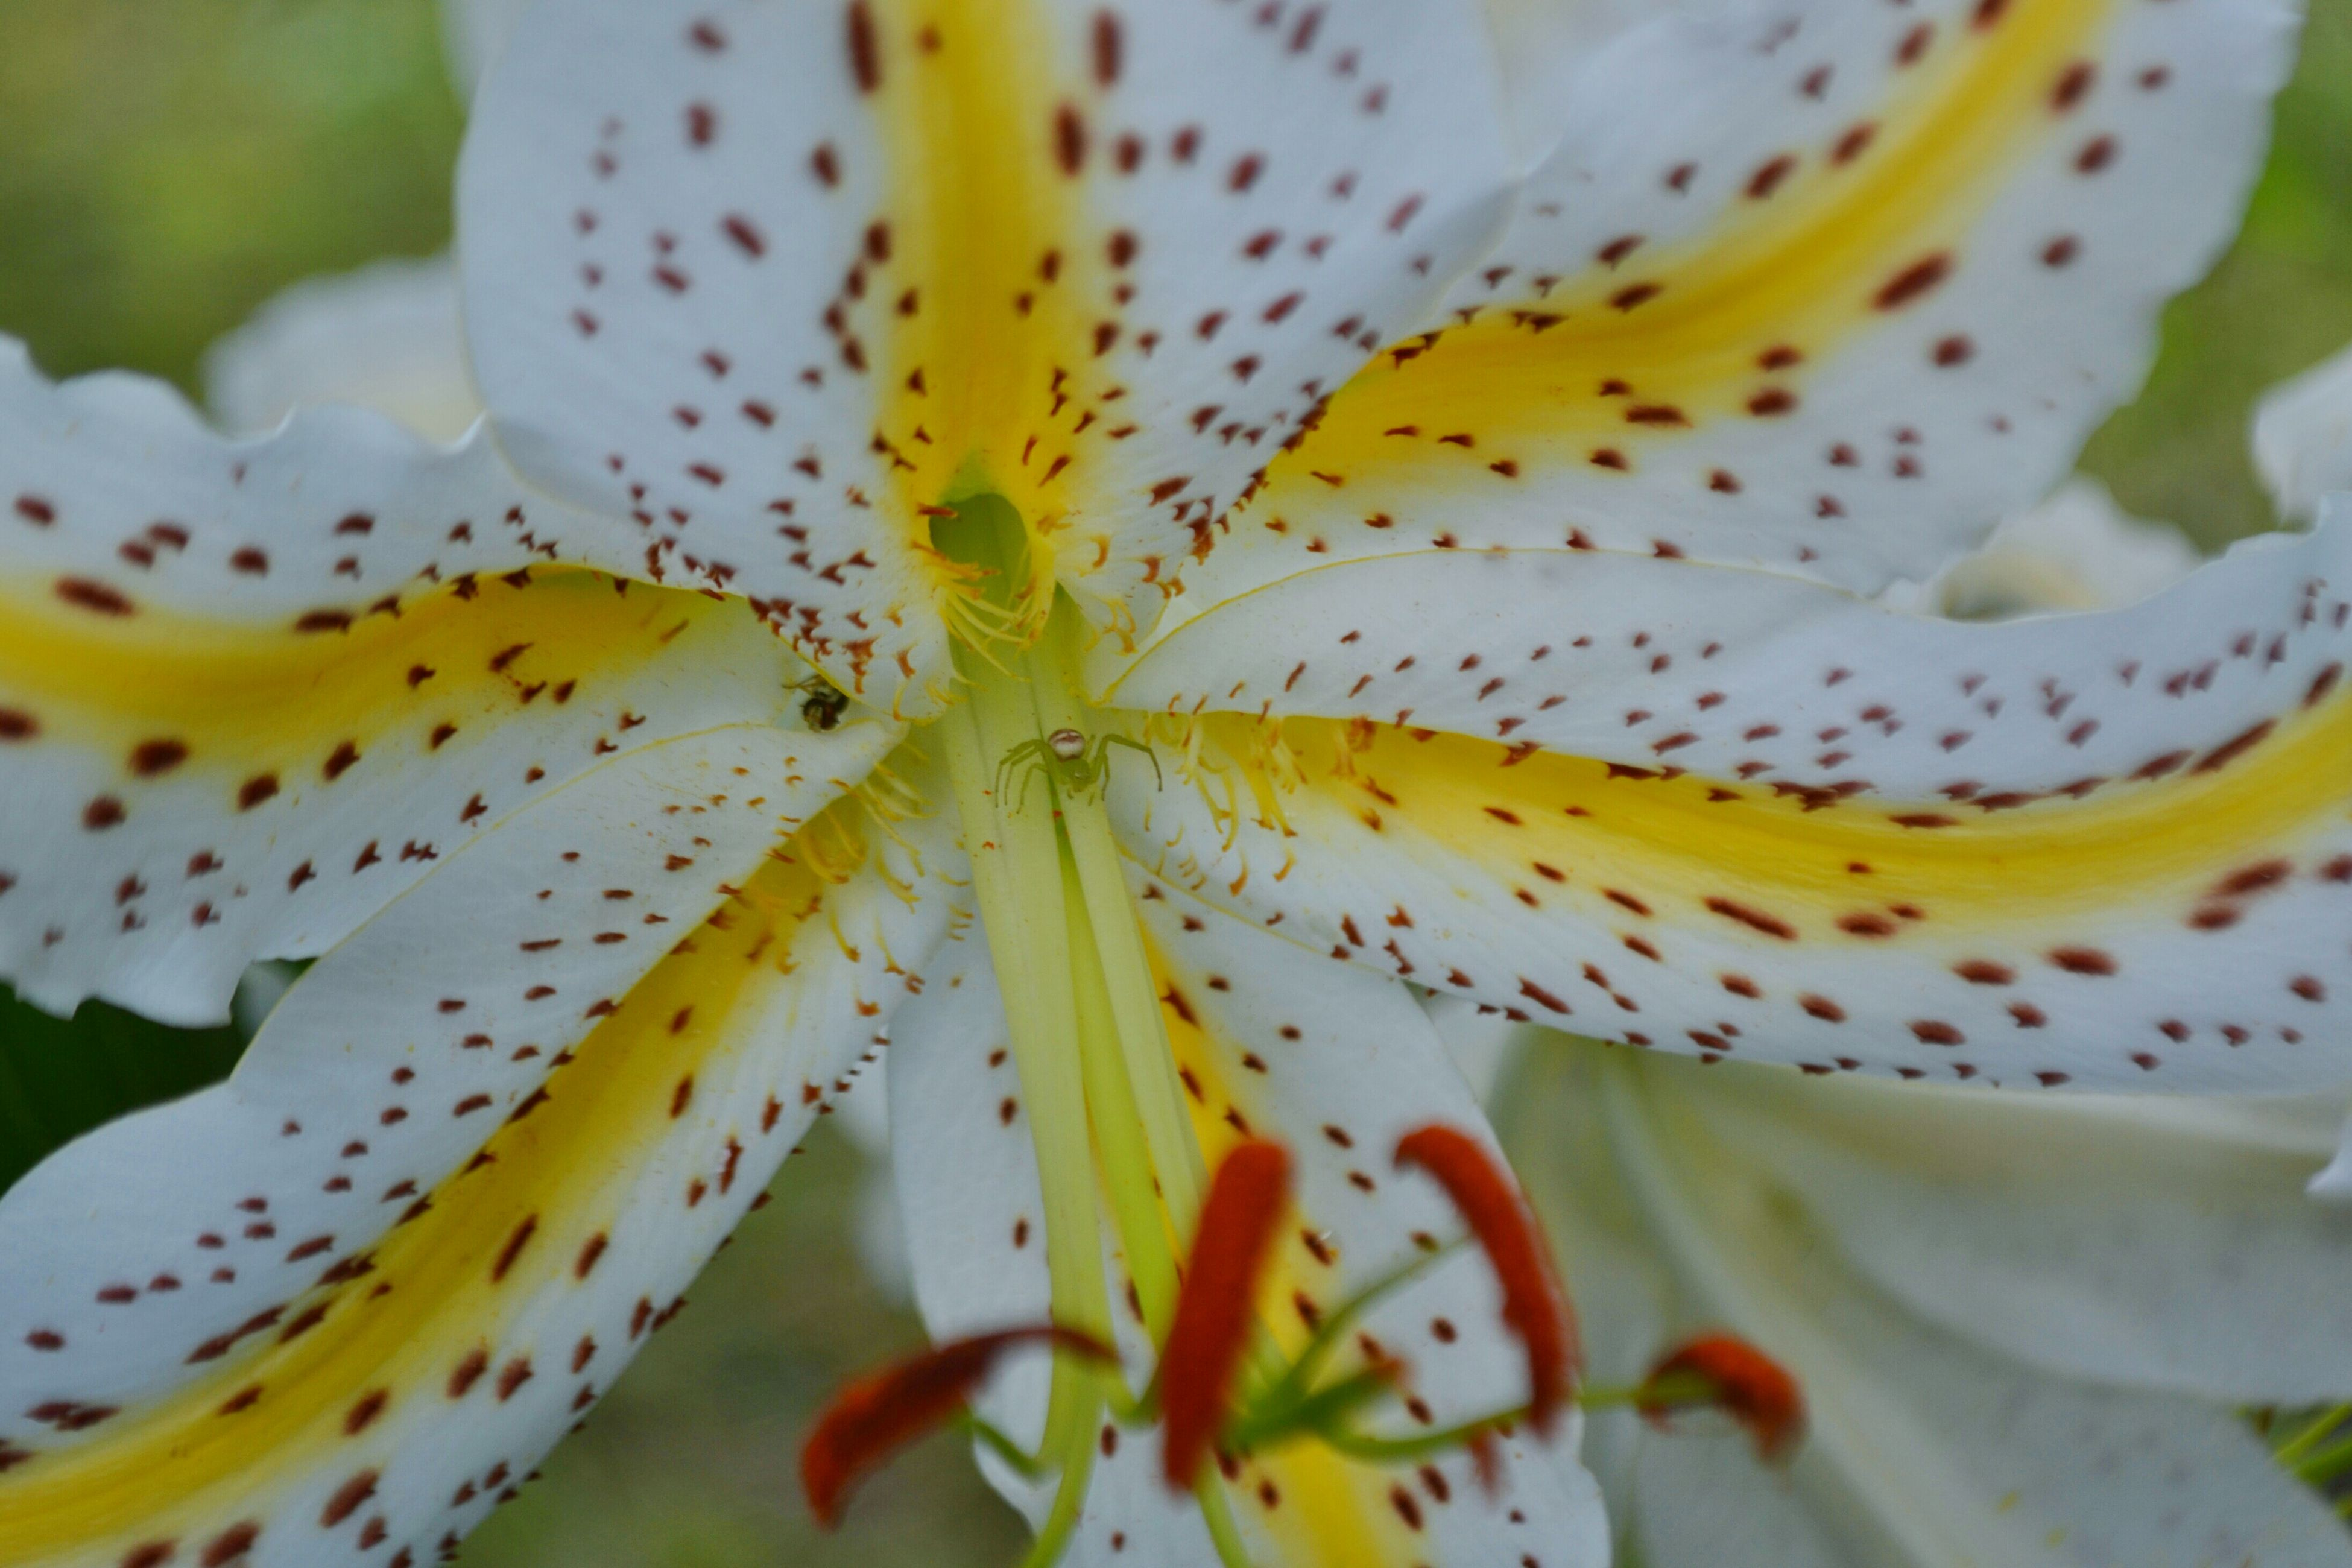 flower, petal, flower head, freshness, fragility, single flower, close-up, beauty in nature, pollen, growth, stamen, nature, blooming, extreme close-up, plant, yellow, natural pattern, selective focus, white color, design